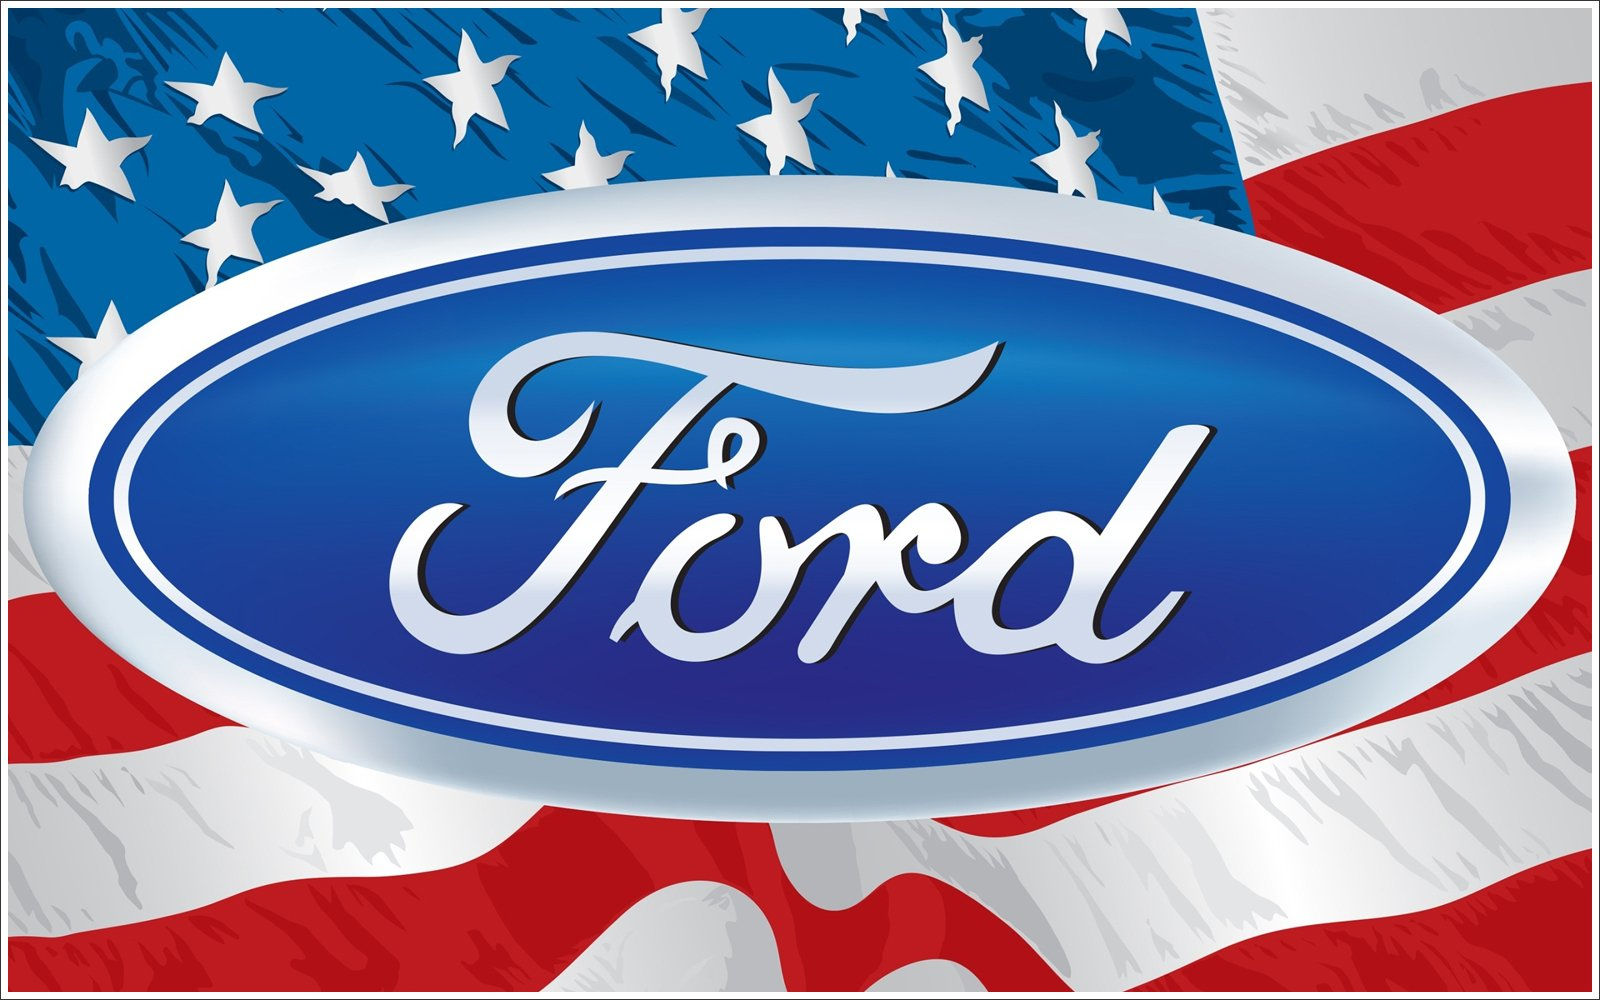 Ford >> Ford Logo Meaning and History, latest models | World Cars Brands